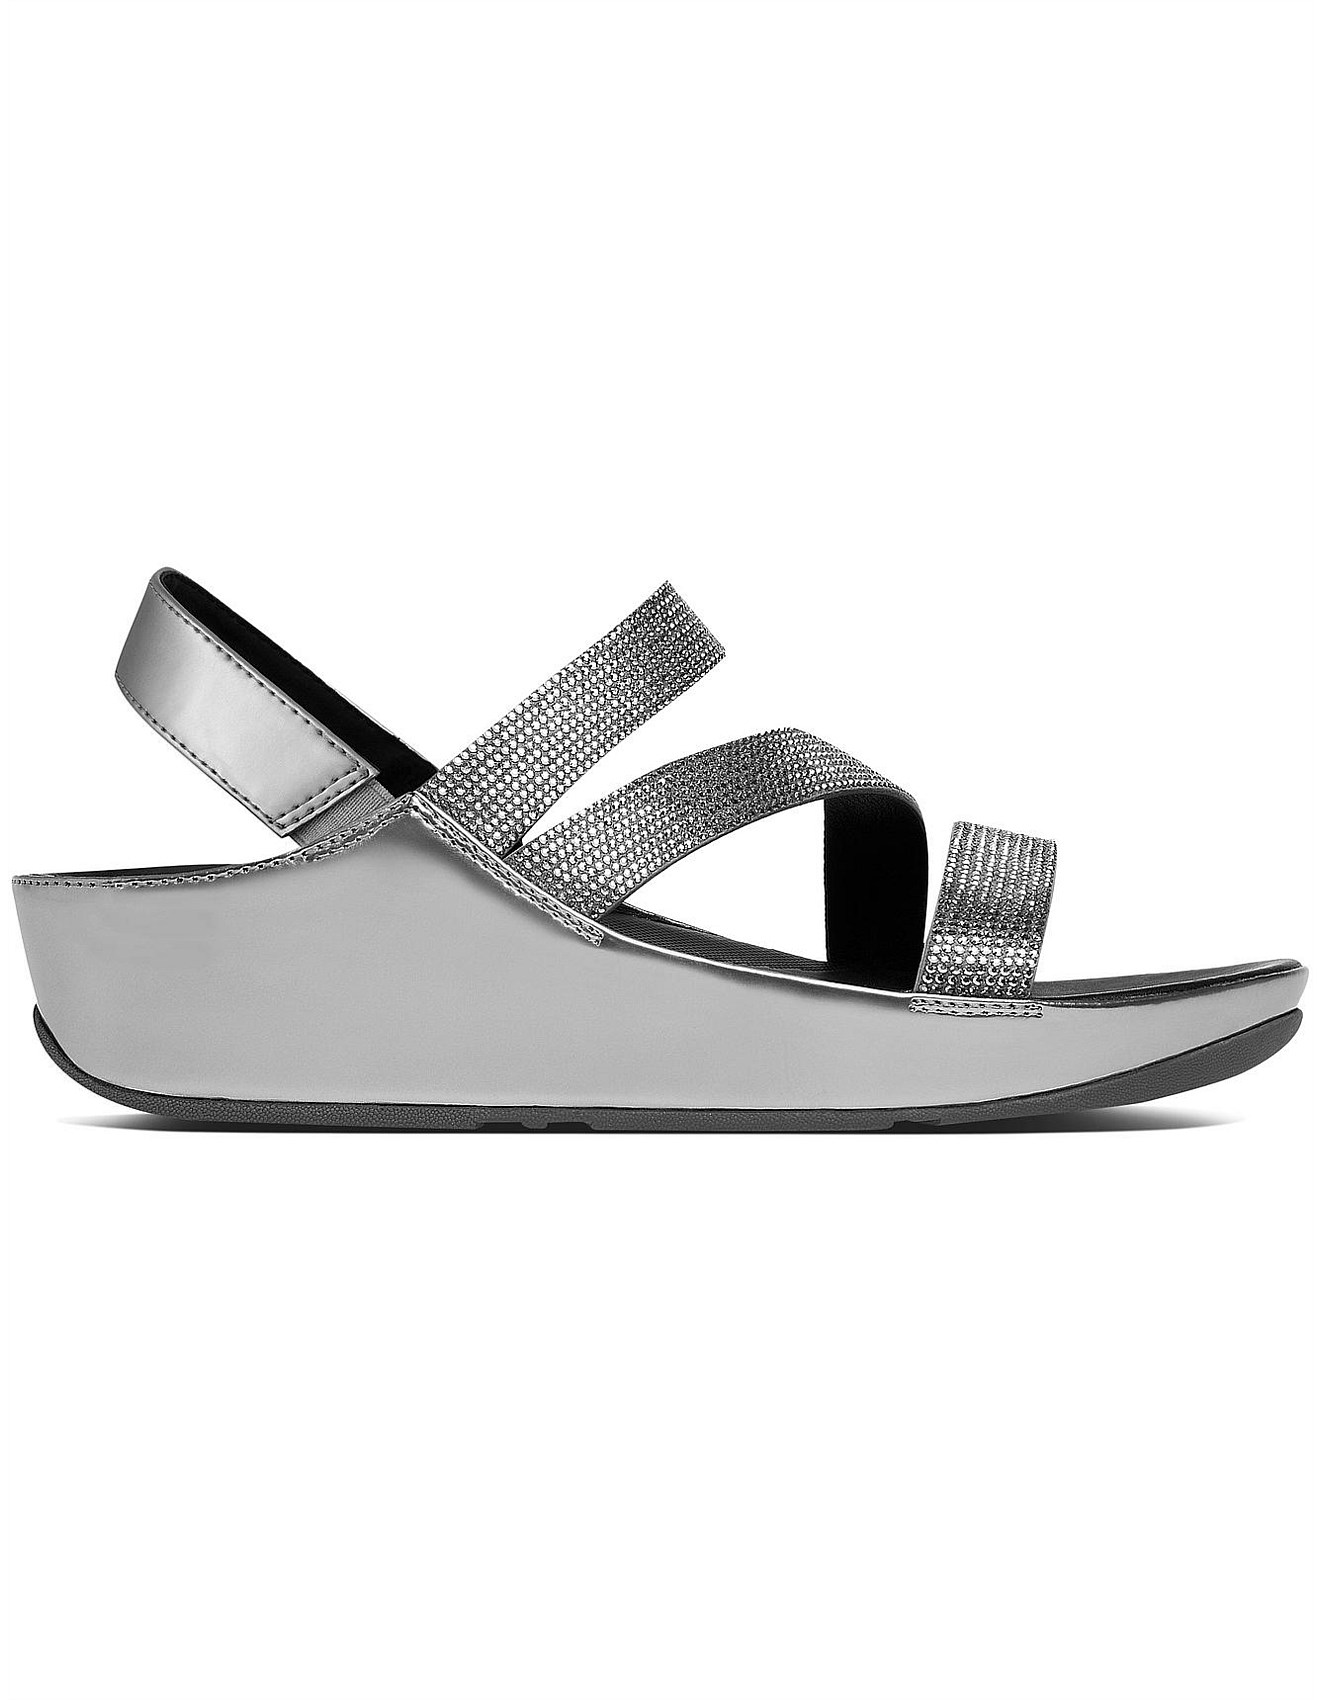 W Crystall Z-Strap Sandal Pewt FitFlop CMafWkf0a